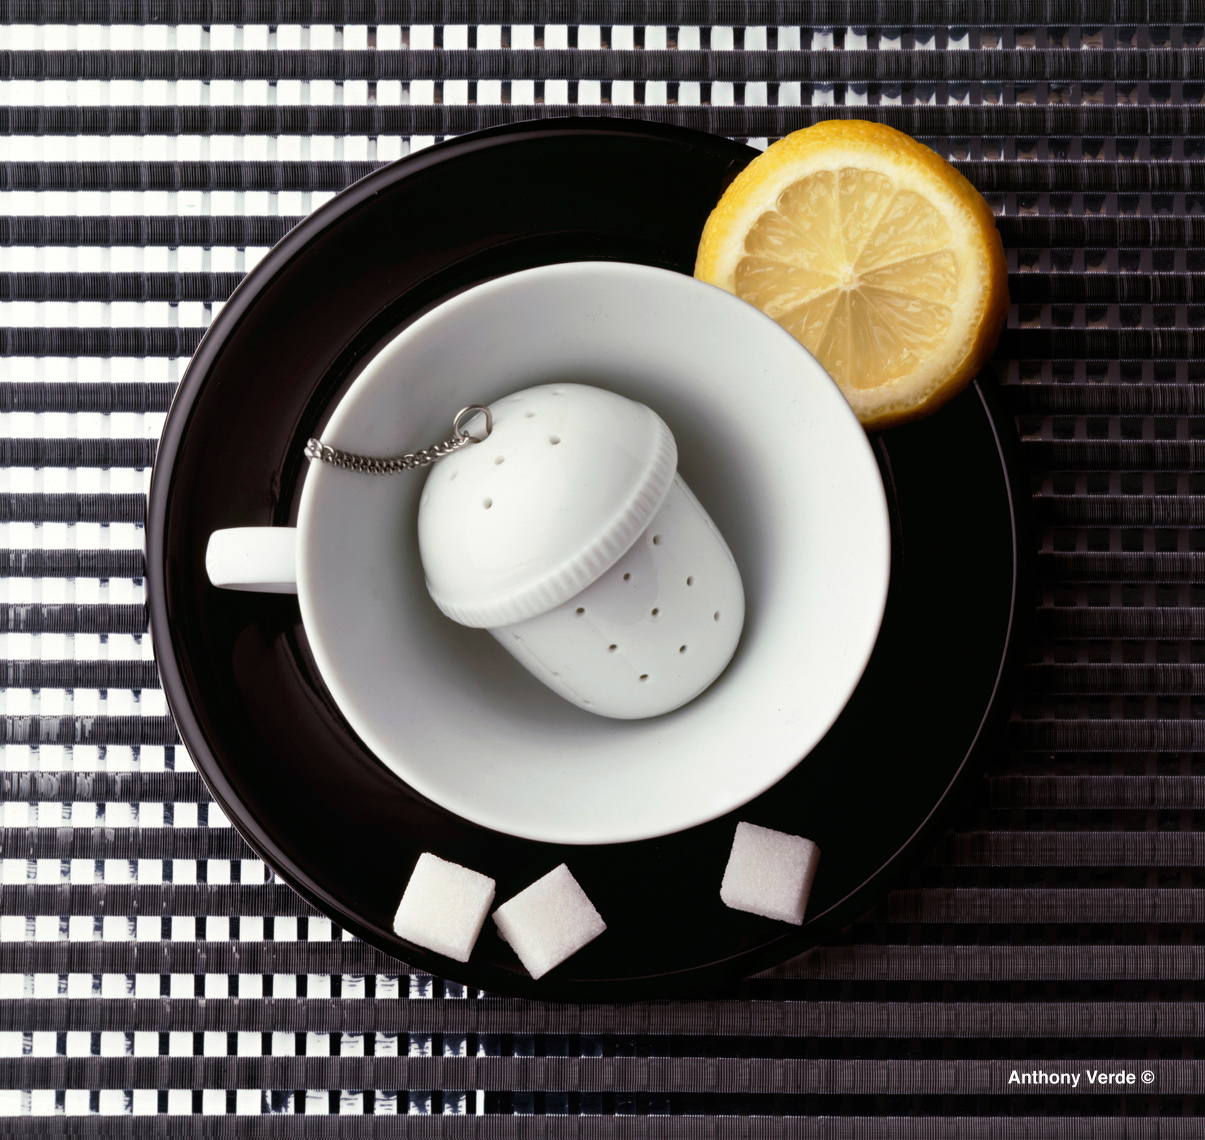 teacup-lemon-sugar-still-life-photography